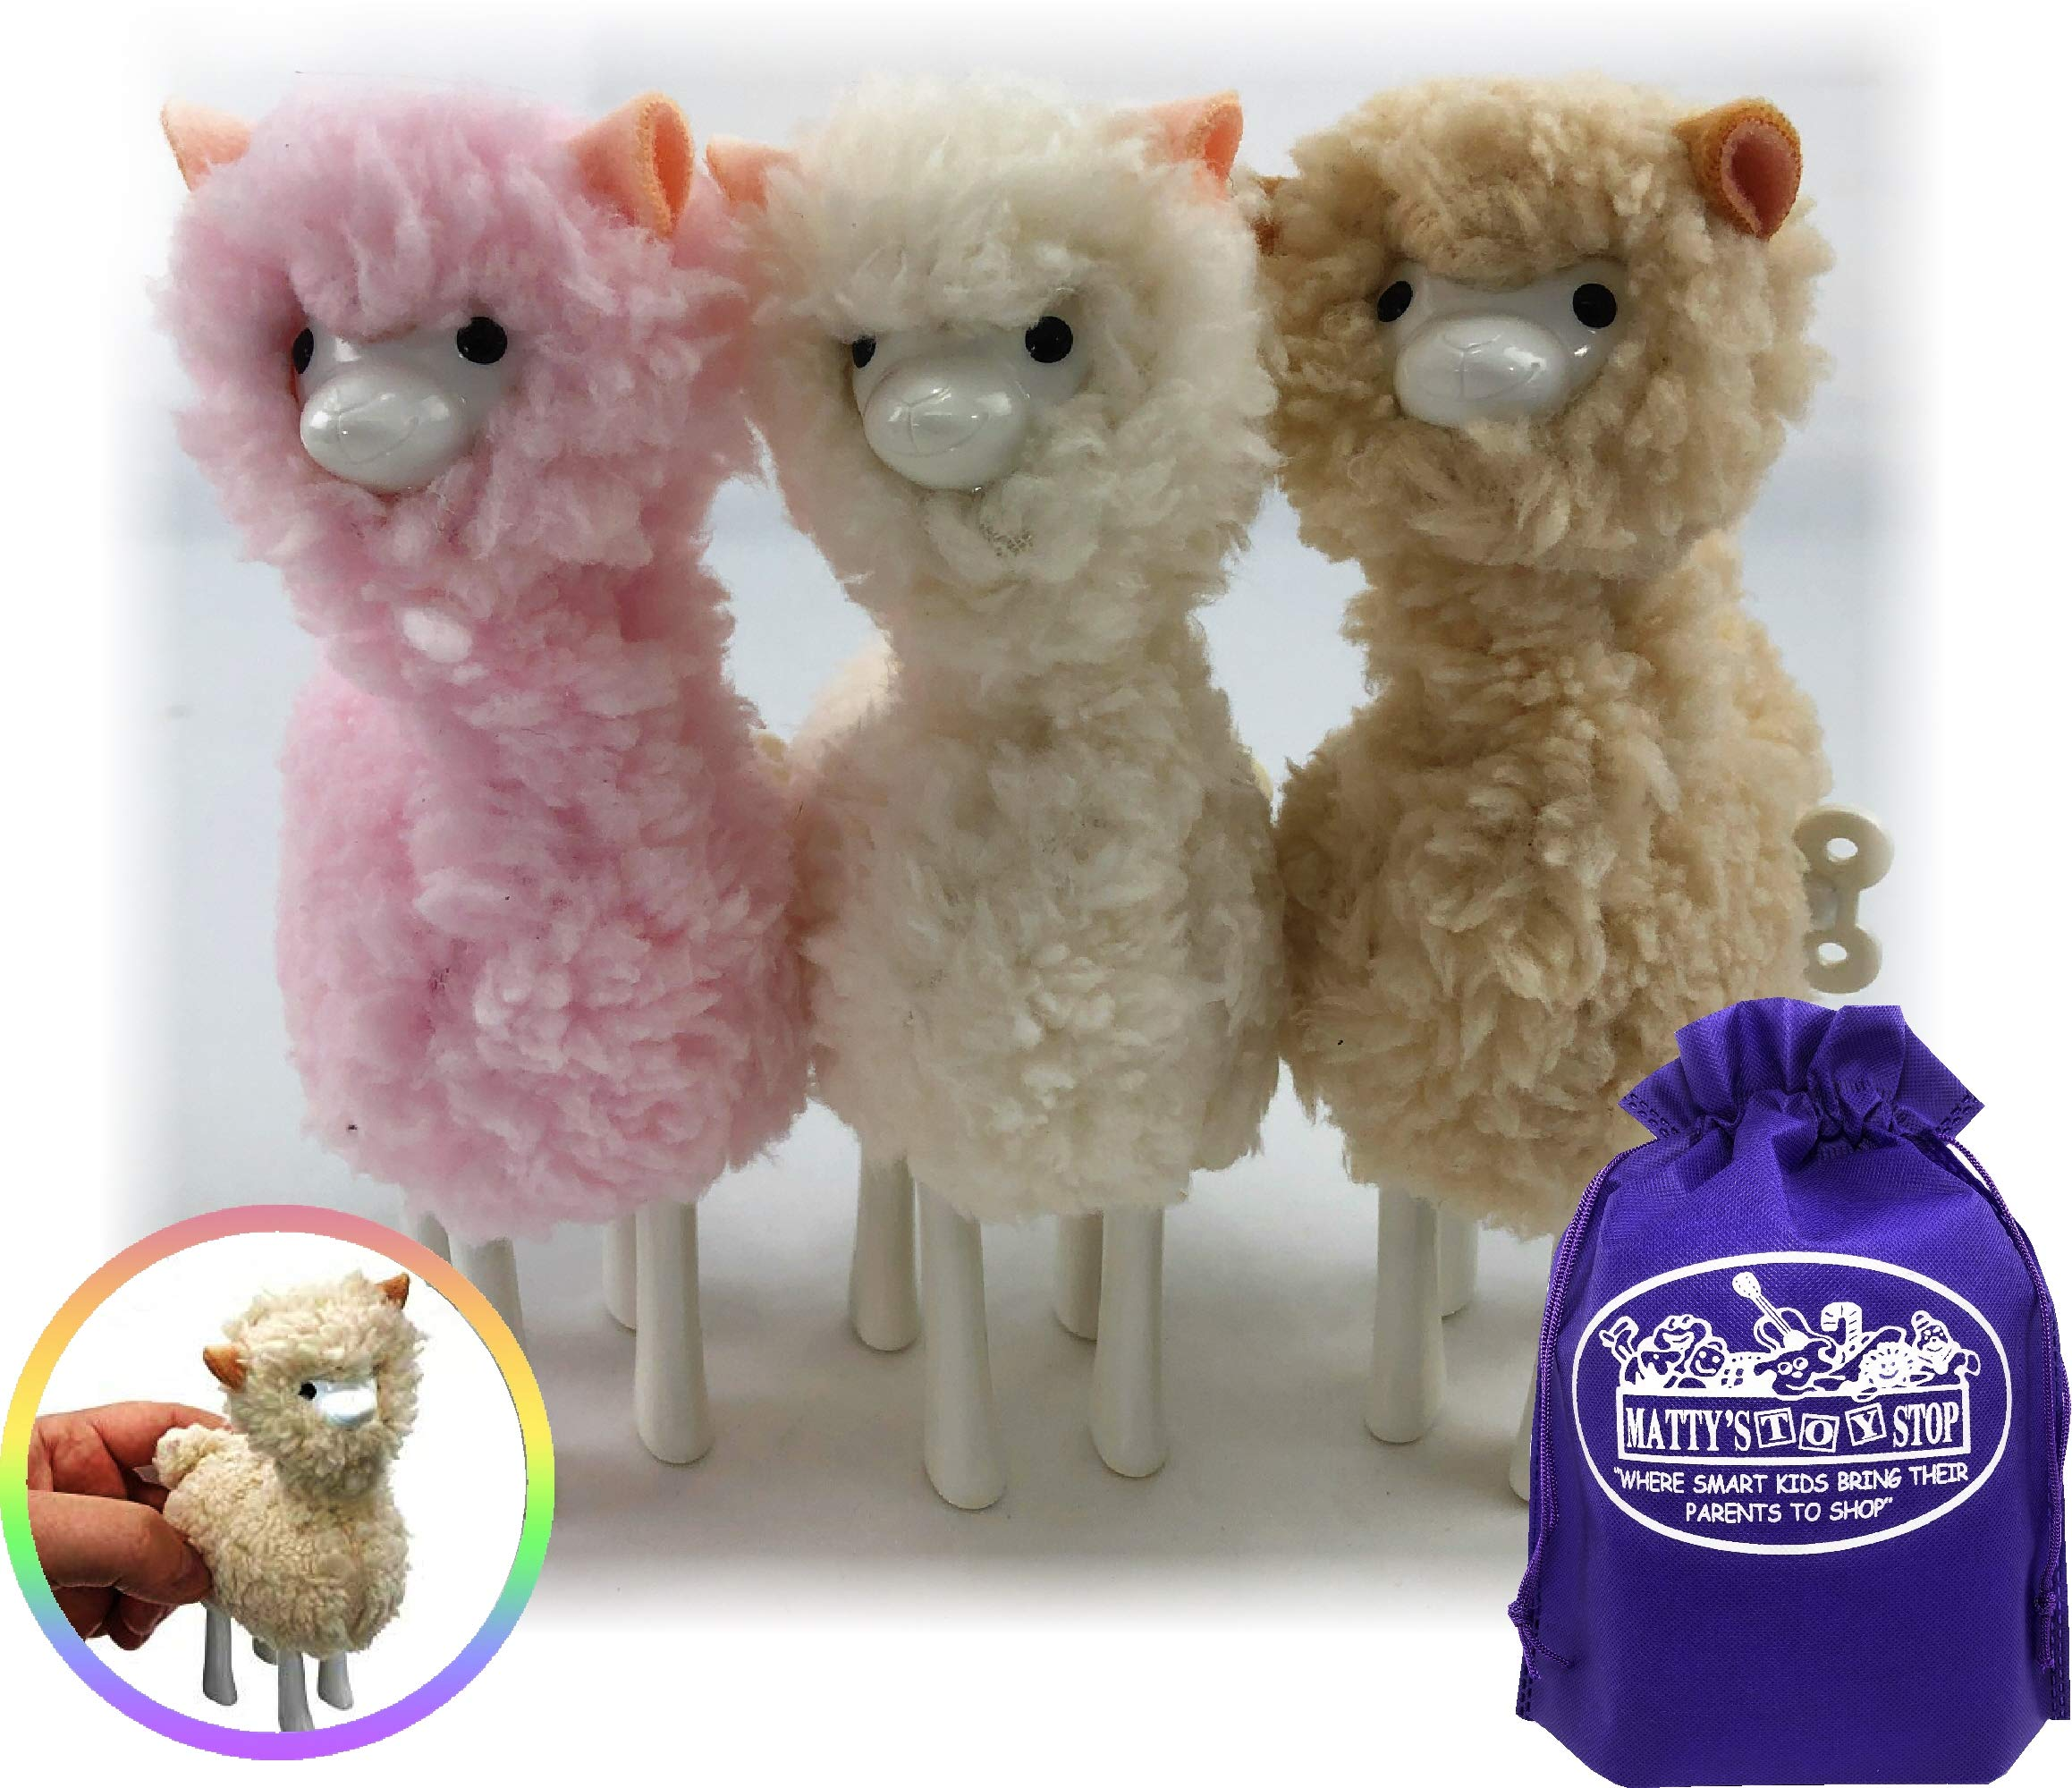 Schylling Llama Wind-Up Walkers White, Pink & Beige Gift Set Bundle with Matty's Toy Stop Storage Bag - 3 Pack by Schylling (Image #3)